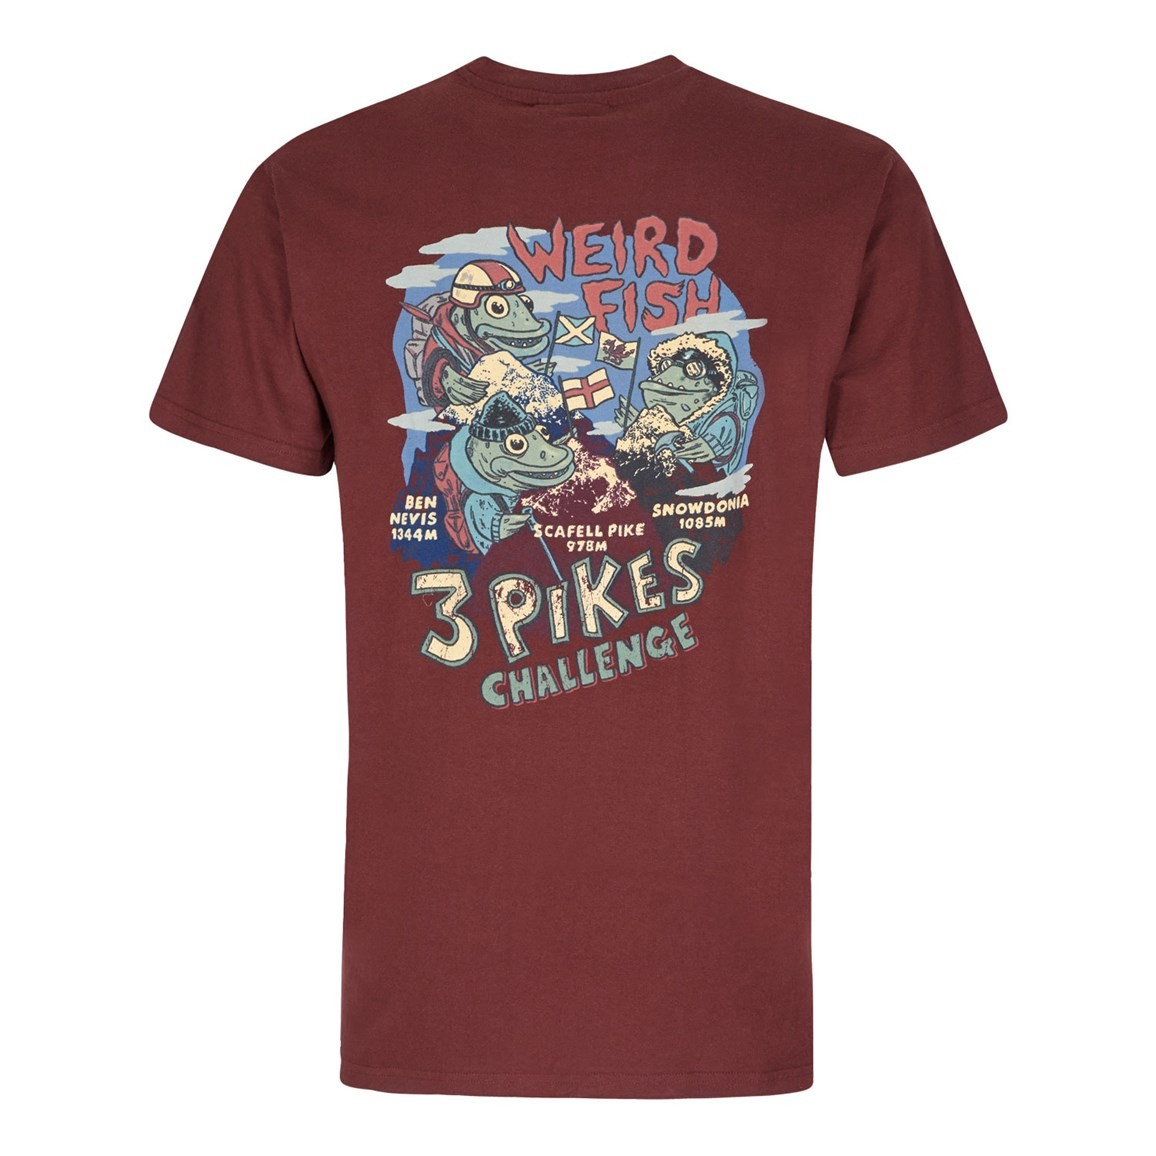 Image of Weird Fish Pikes Challenge Printed Artist T-Shirt Conker Size 2XL